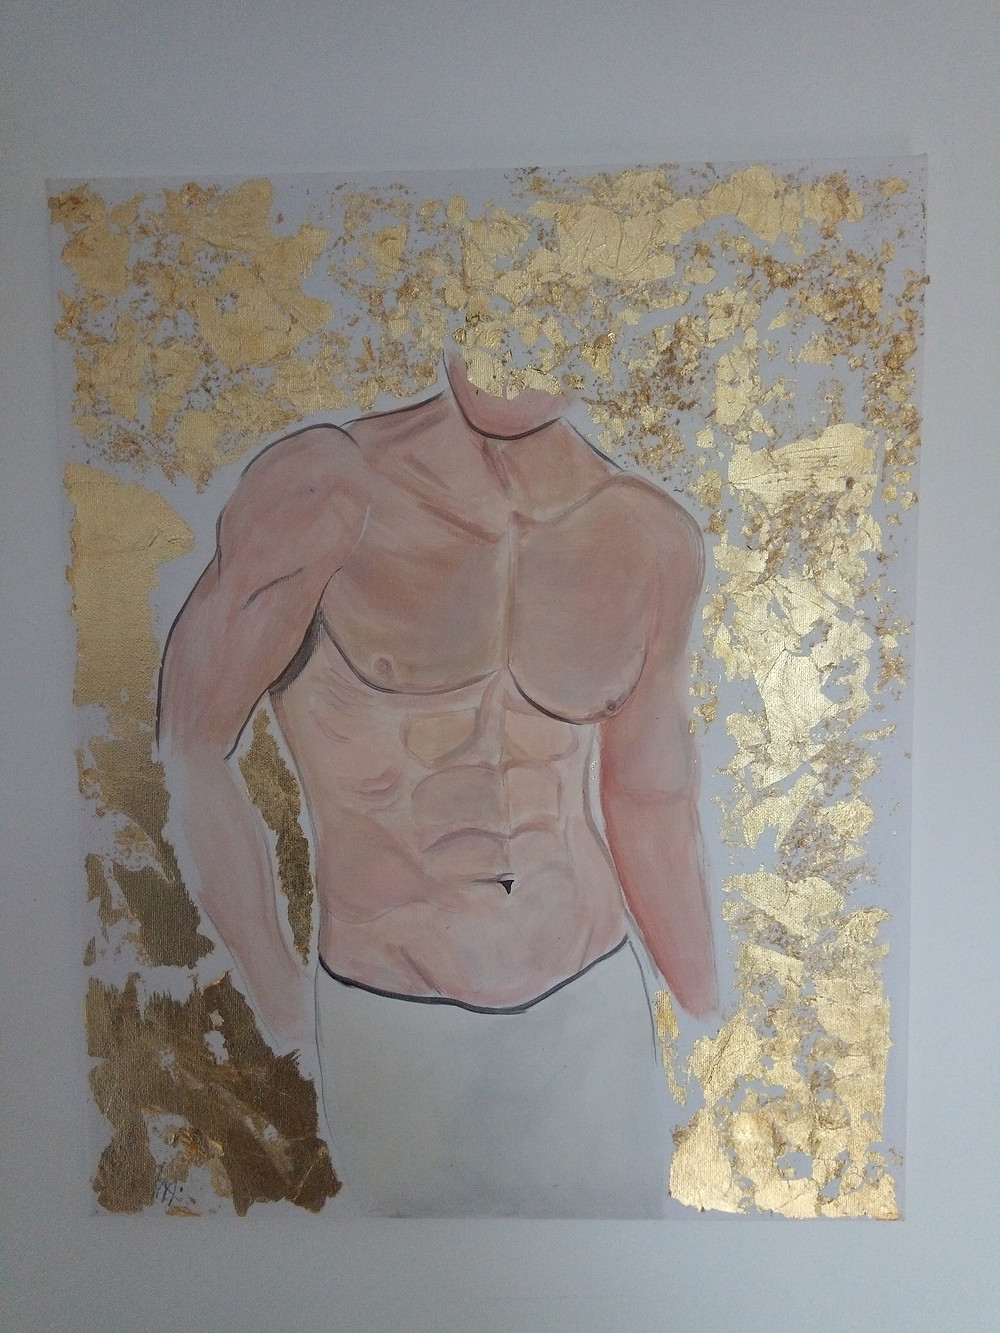 Divine: Goldleaf and Acrylic